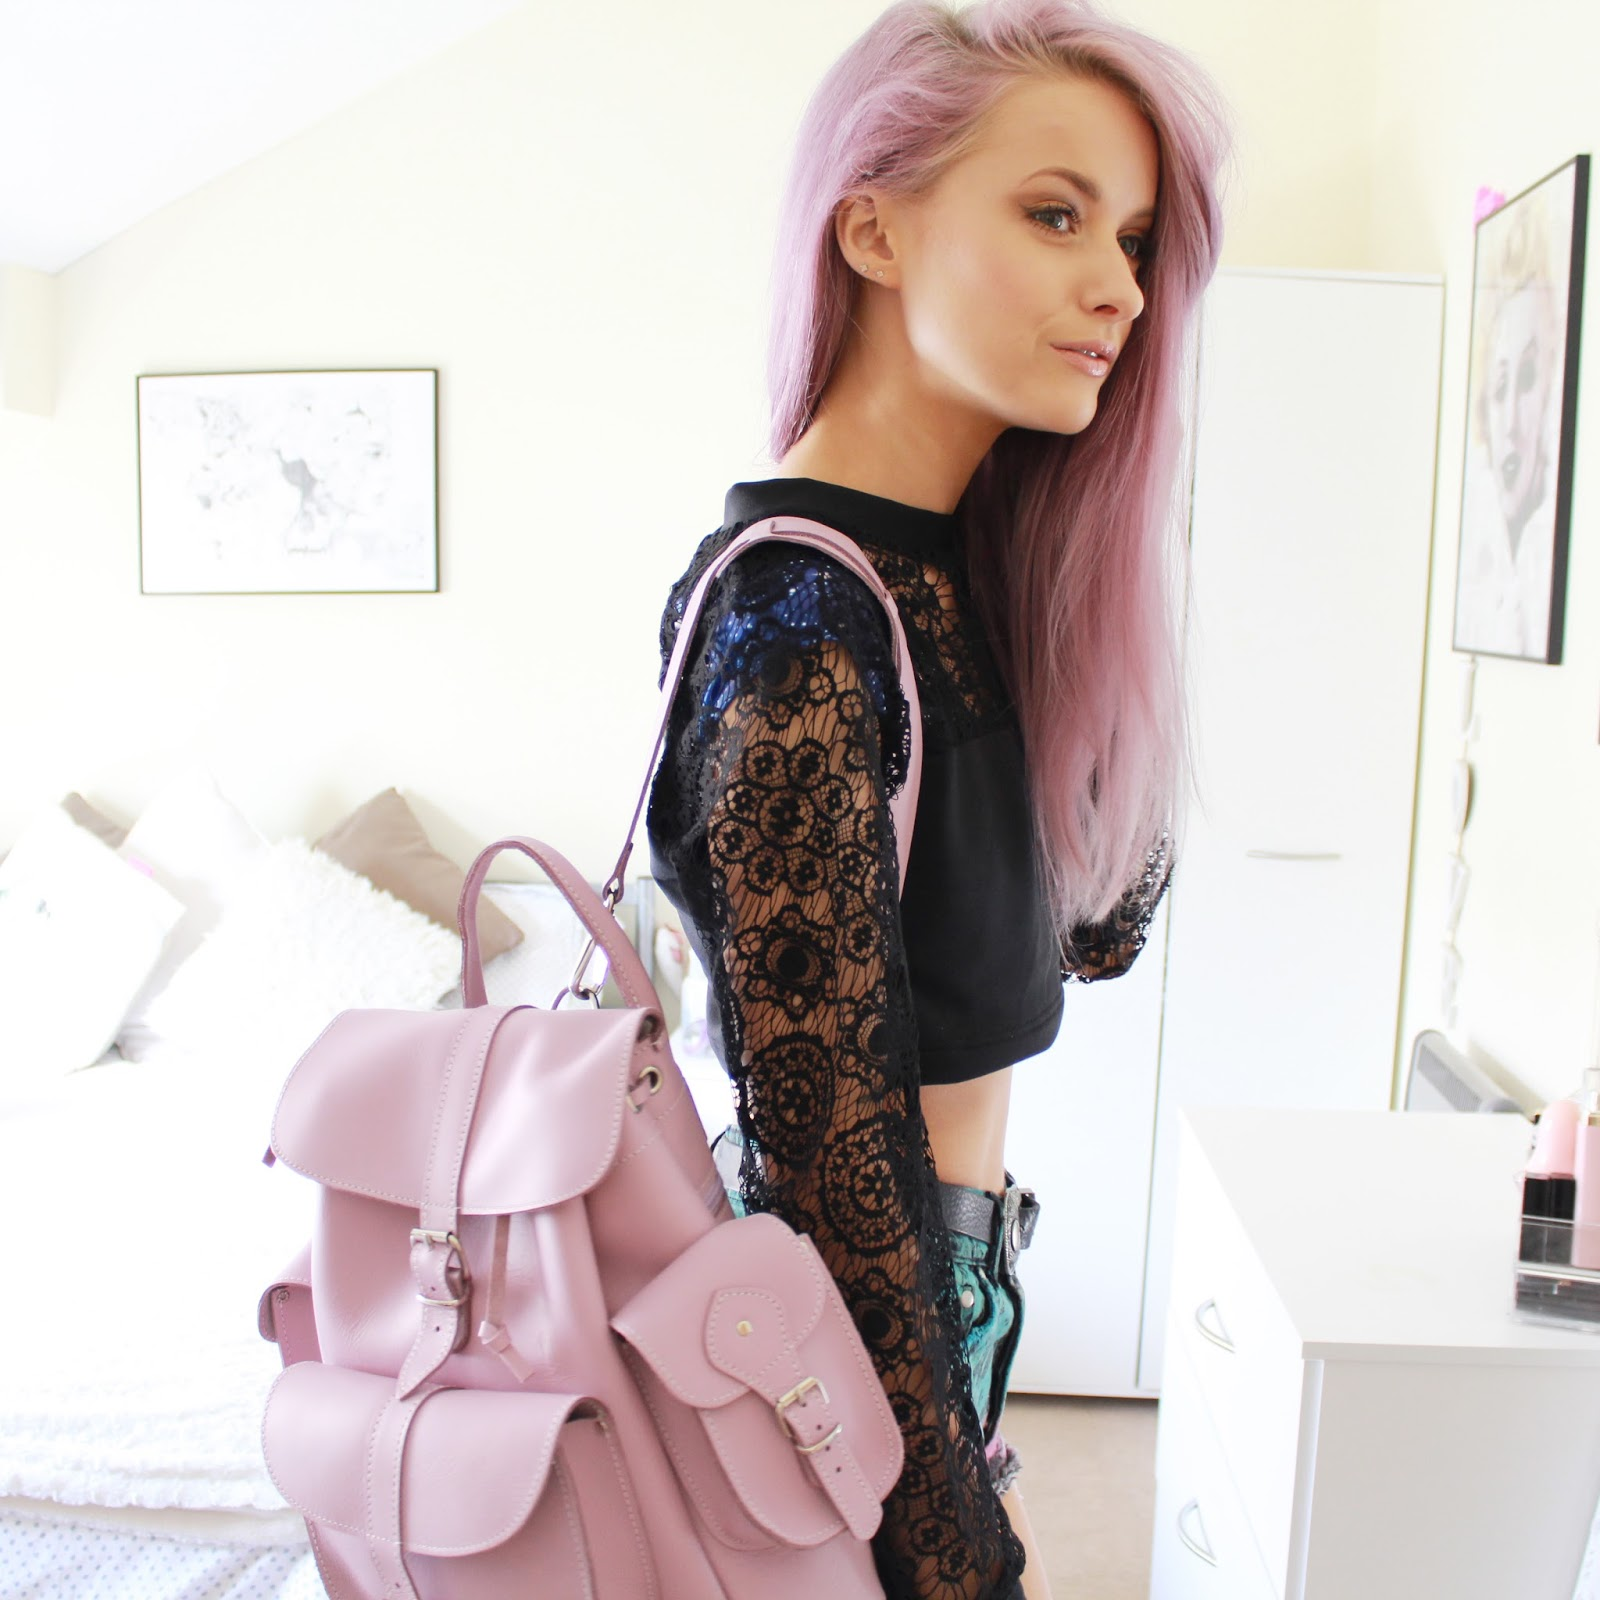 3837ace3550 Black Milk and Lavender Backpacks - Inthefrow